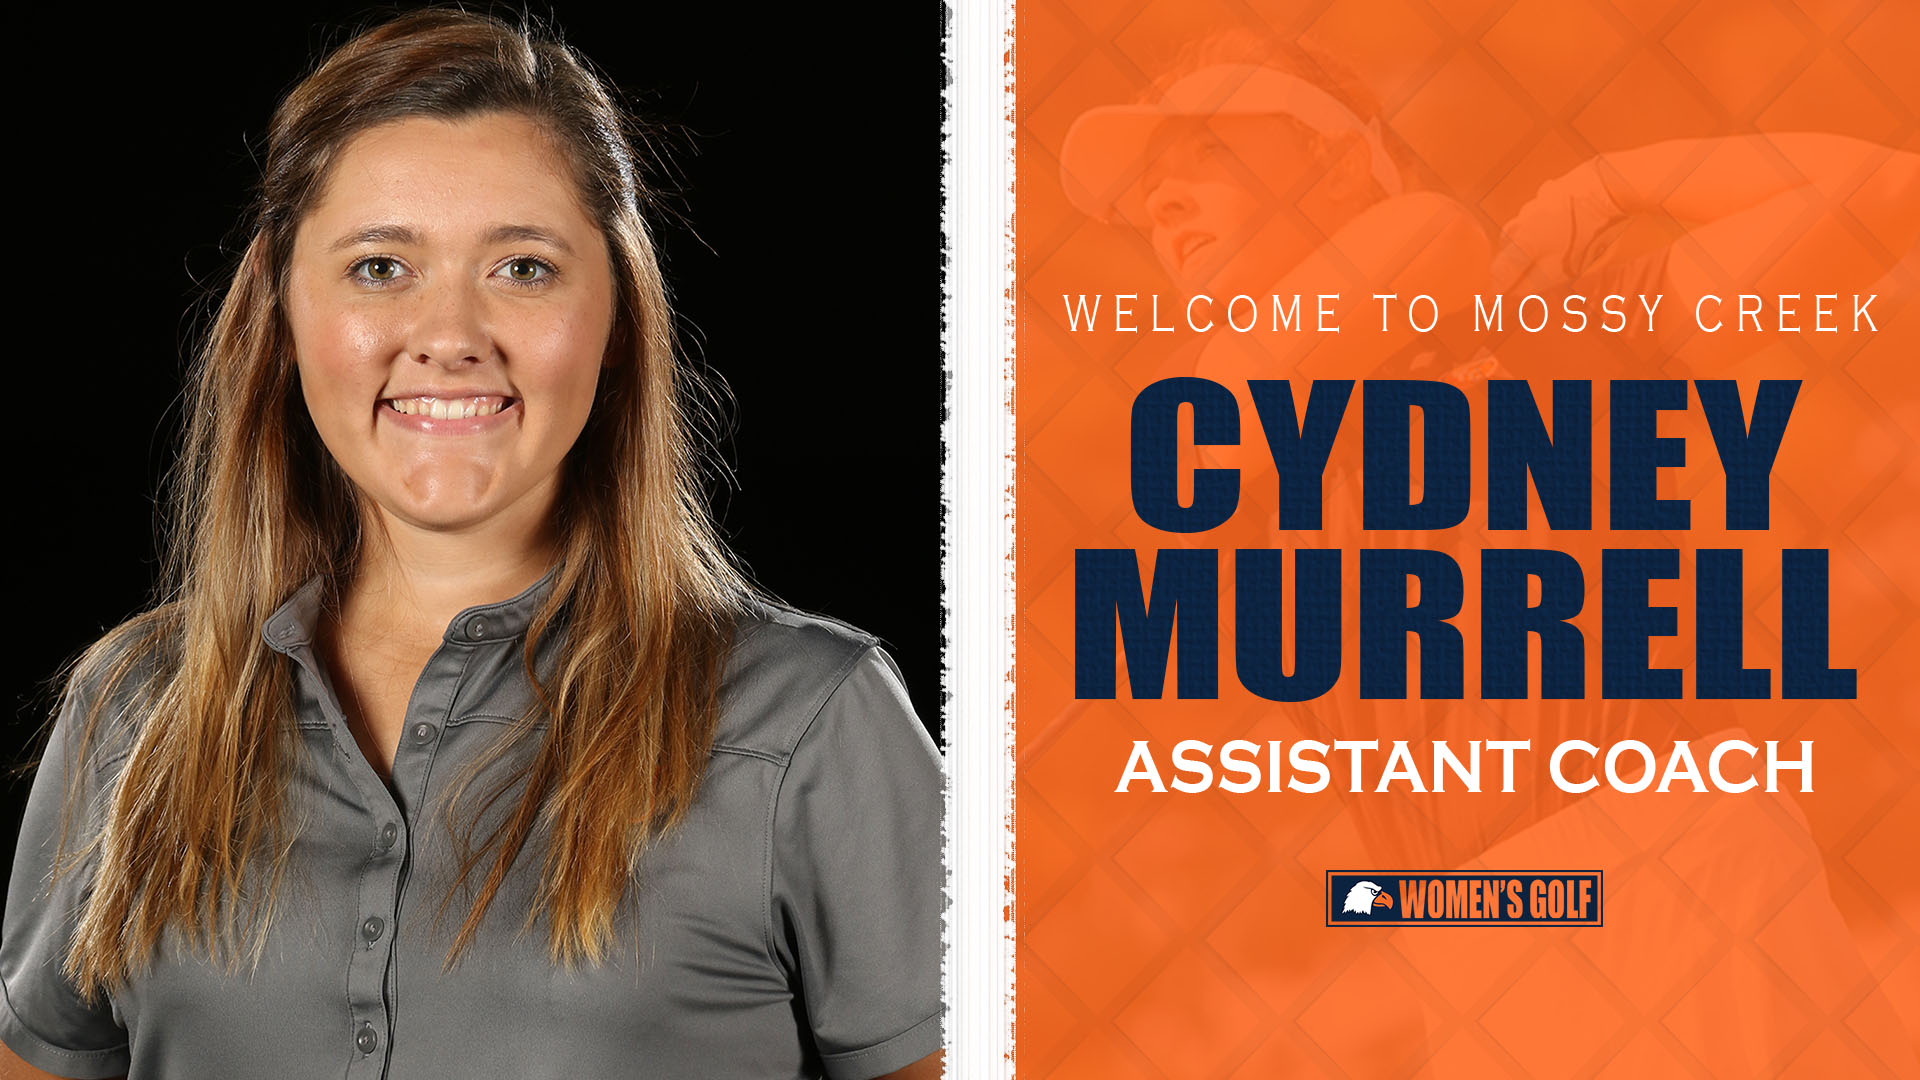 Murrell announced as assistant coach